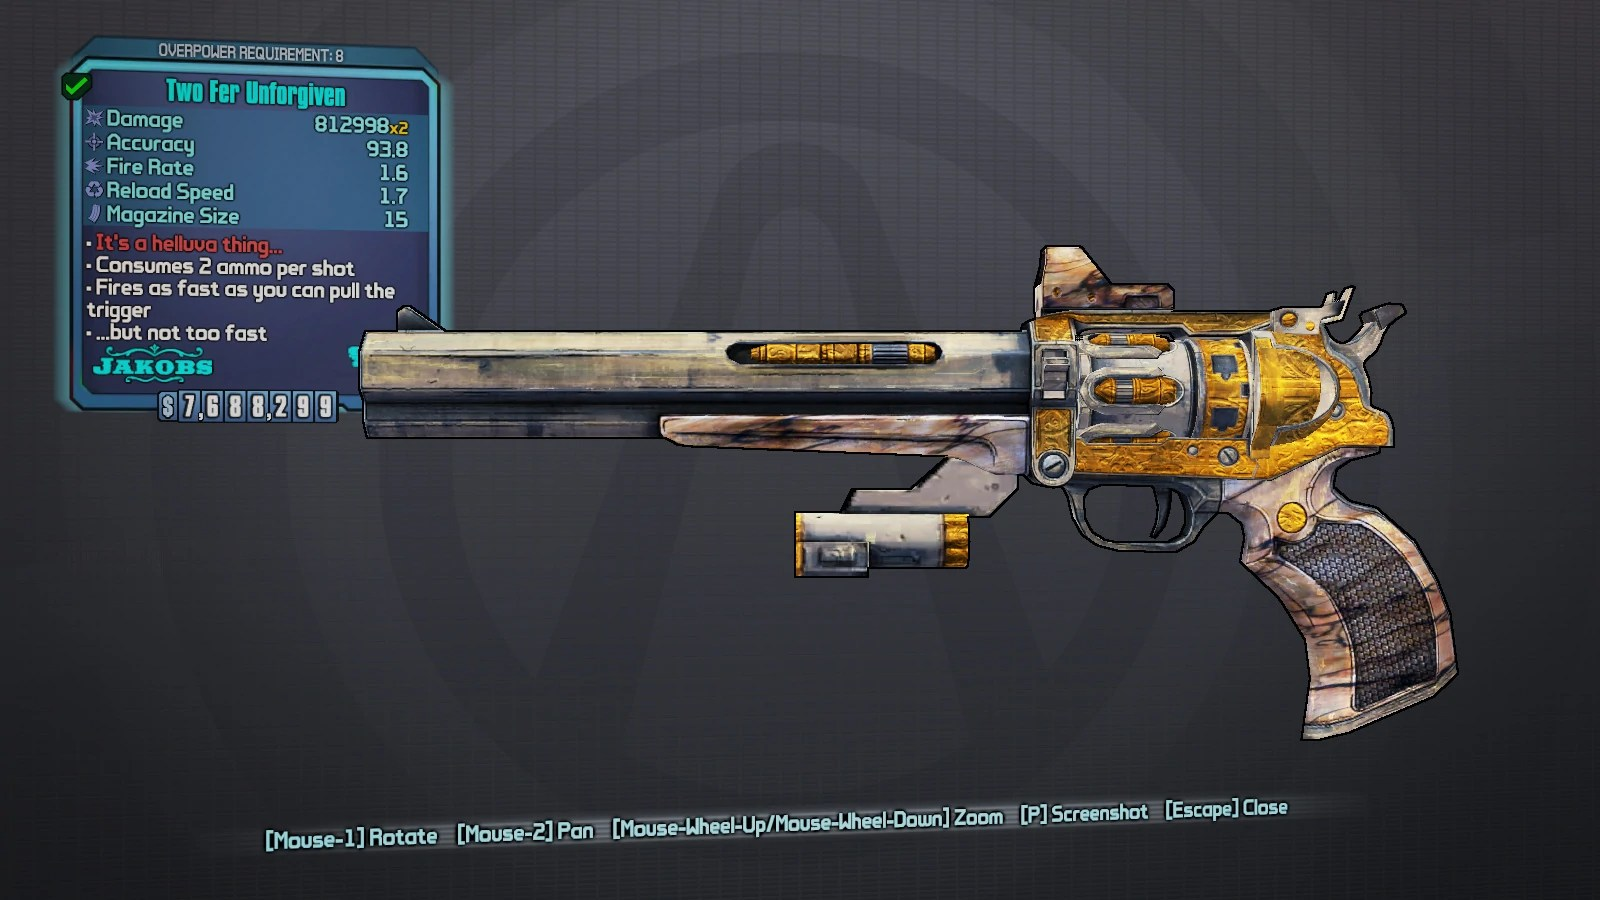 8 Op Borderlands 2 Weapons